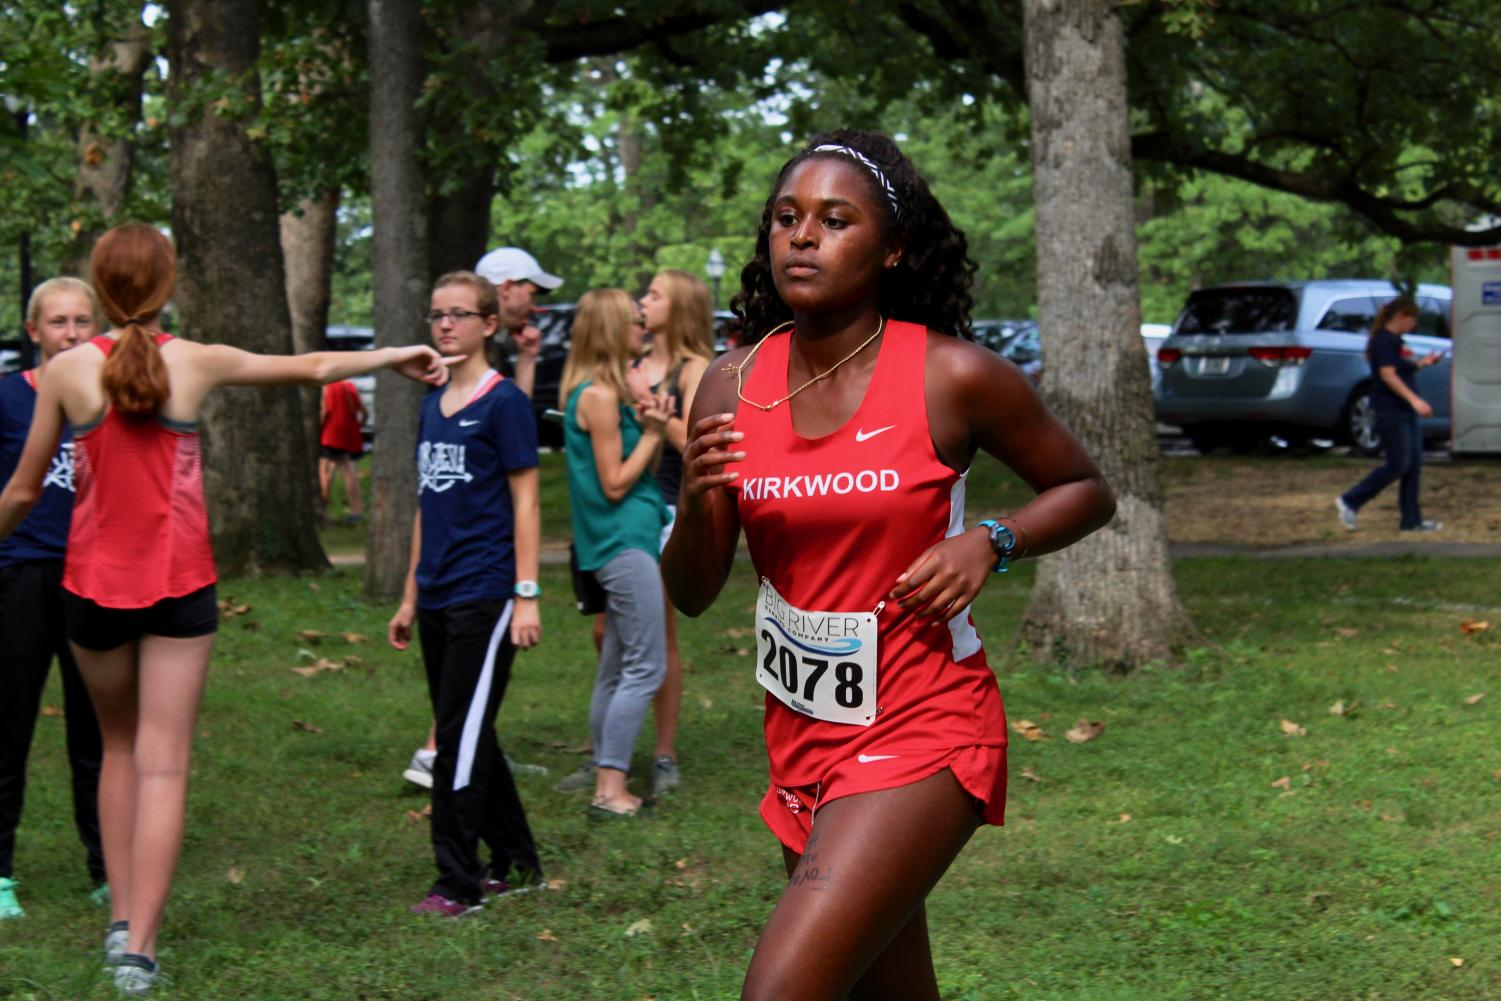 Camille+Denton%2C+senior+and+first-year+cross+country+runner%2C+looks+strong+in+her+first+5k.